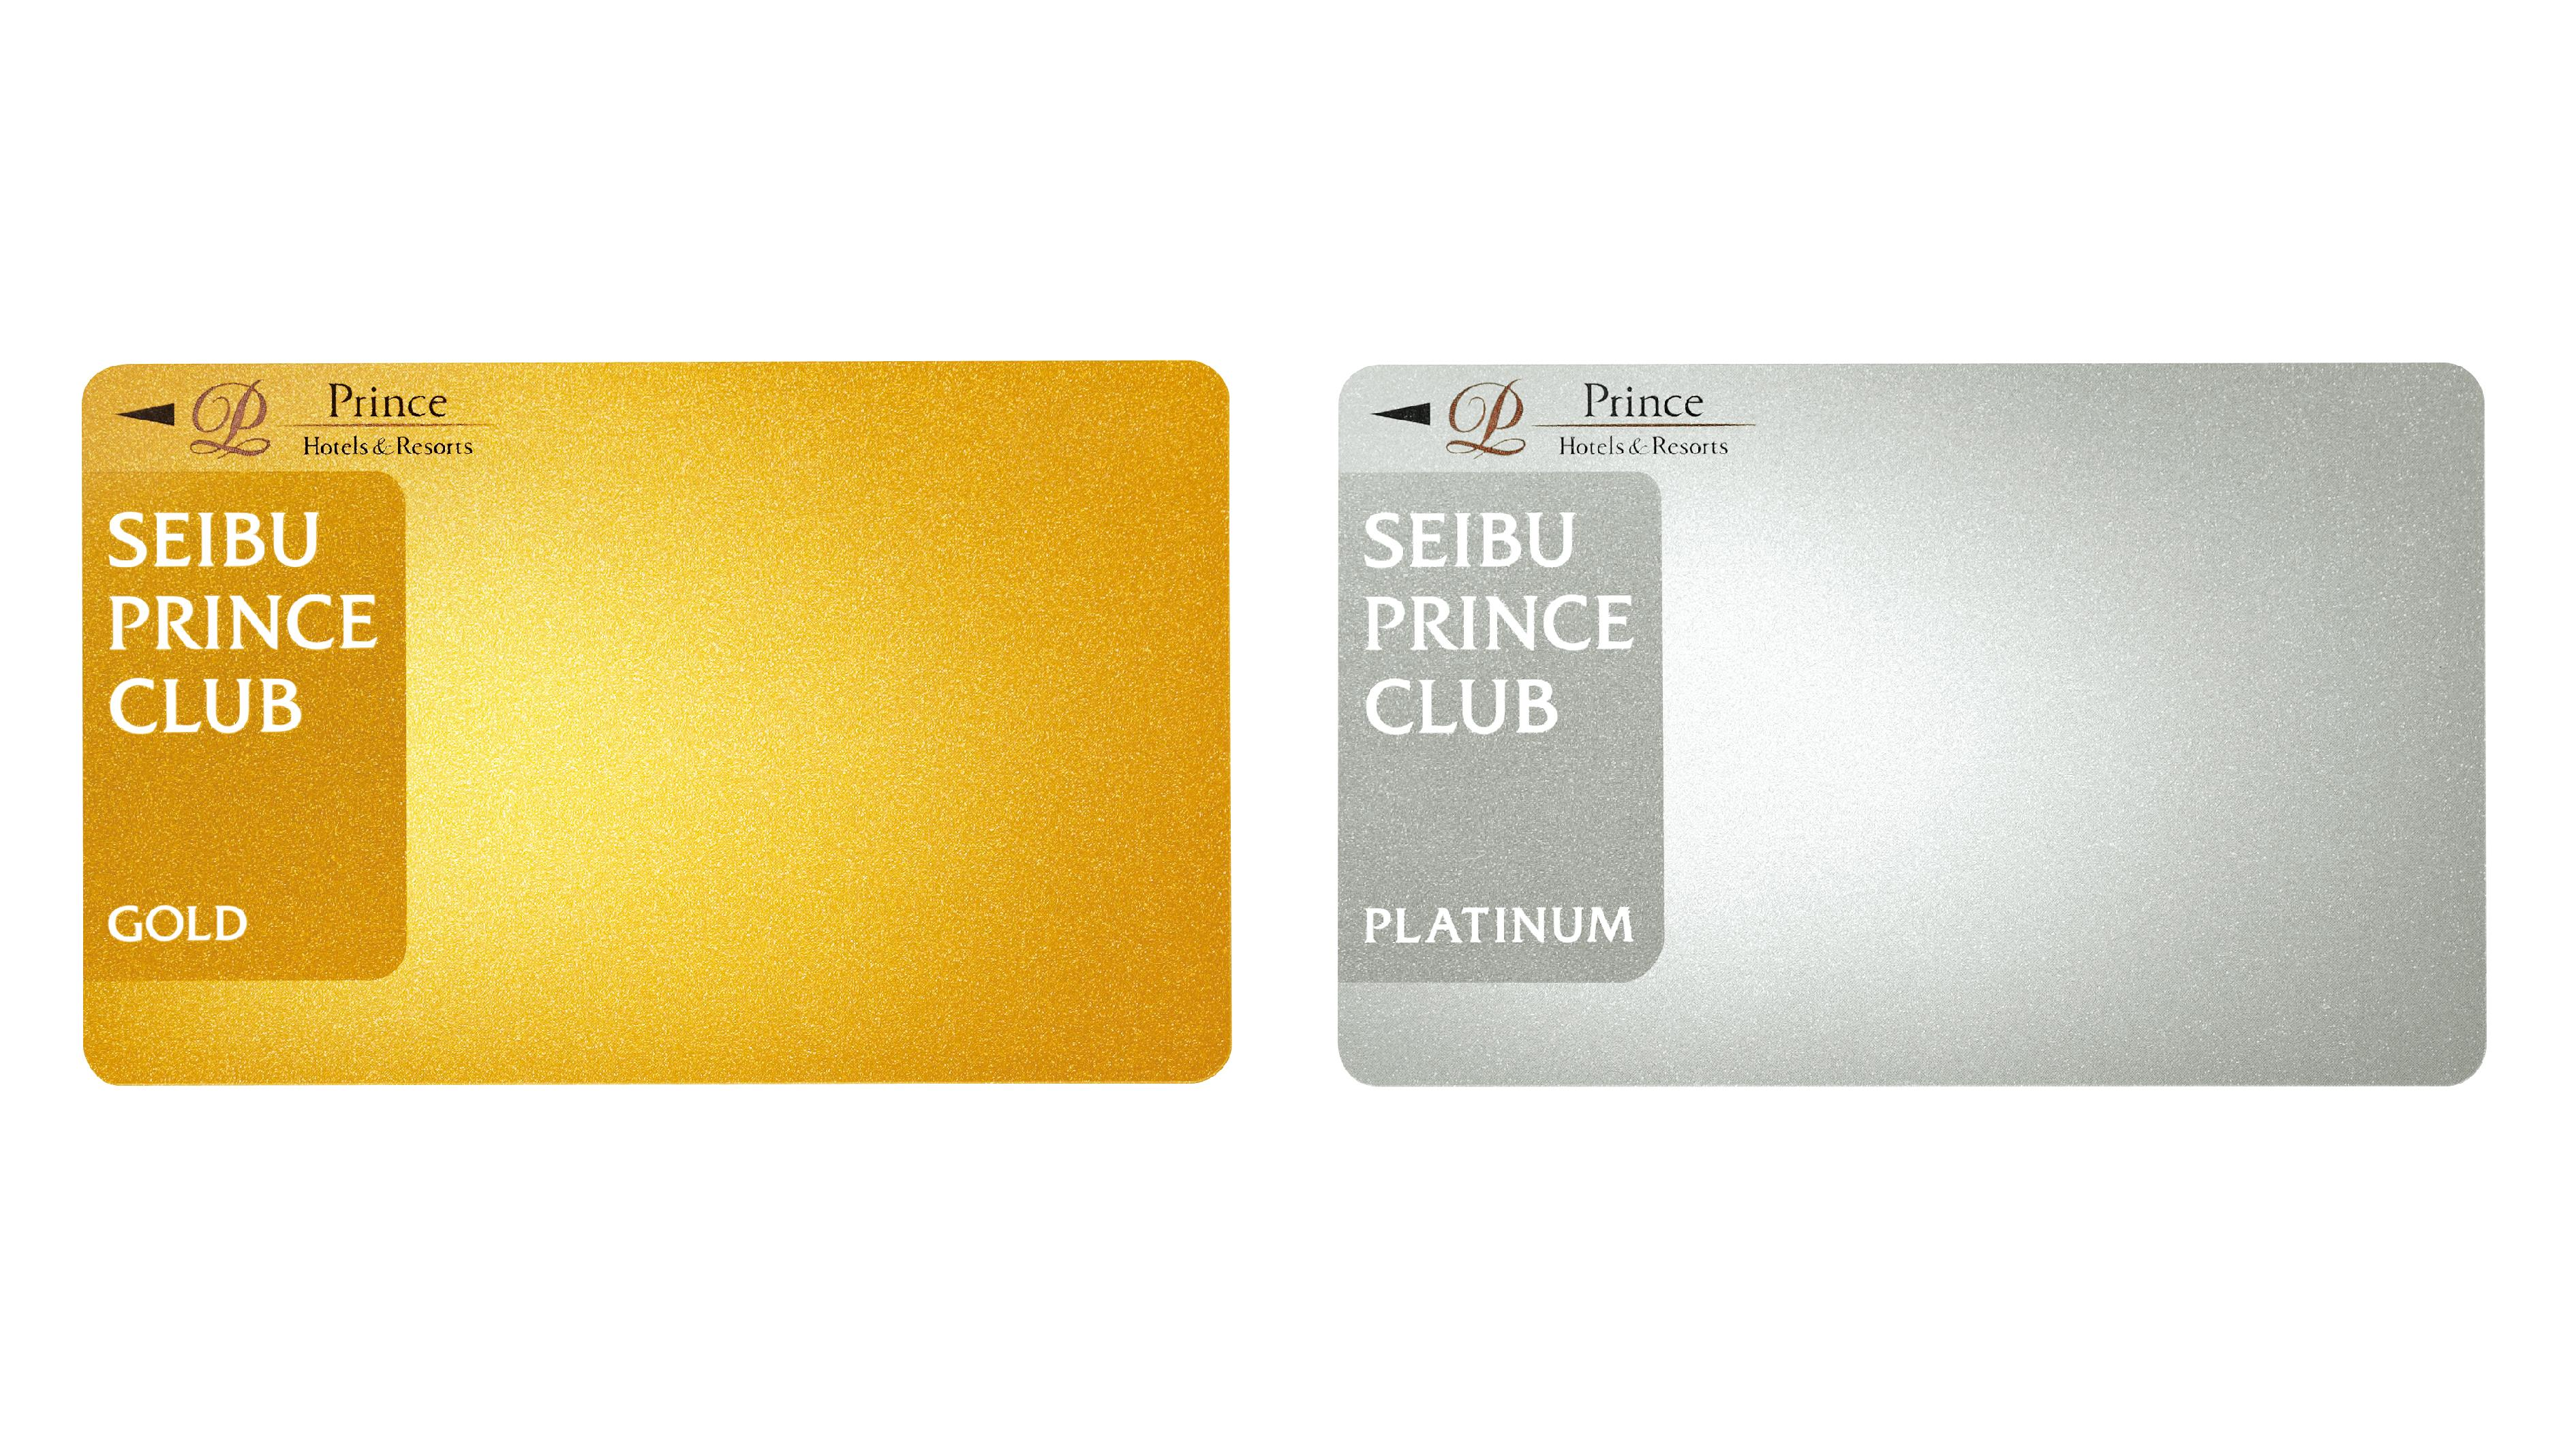 SEIBU PRINCE CLUB Gold Platinum Member benefits